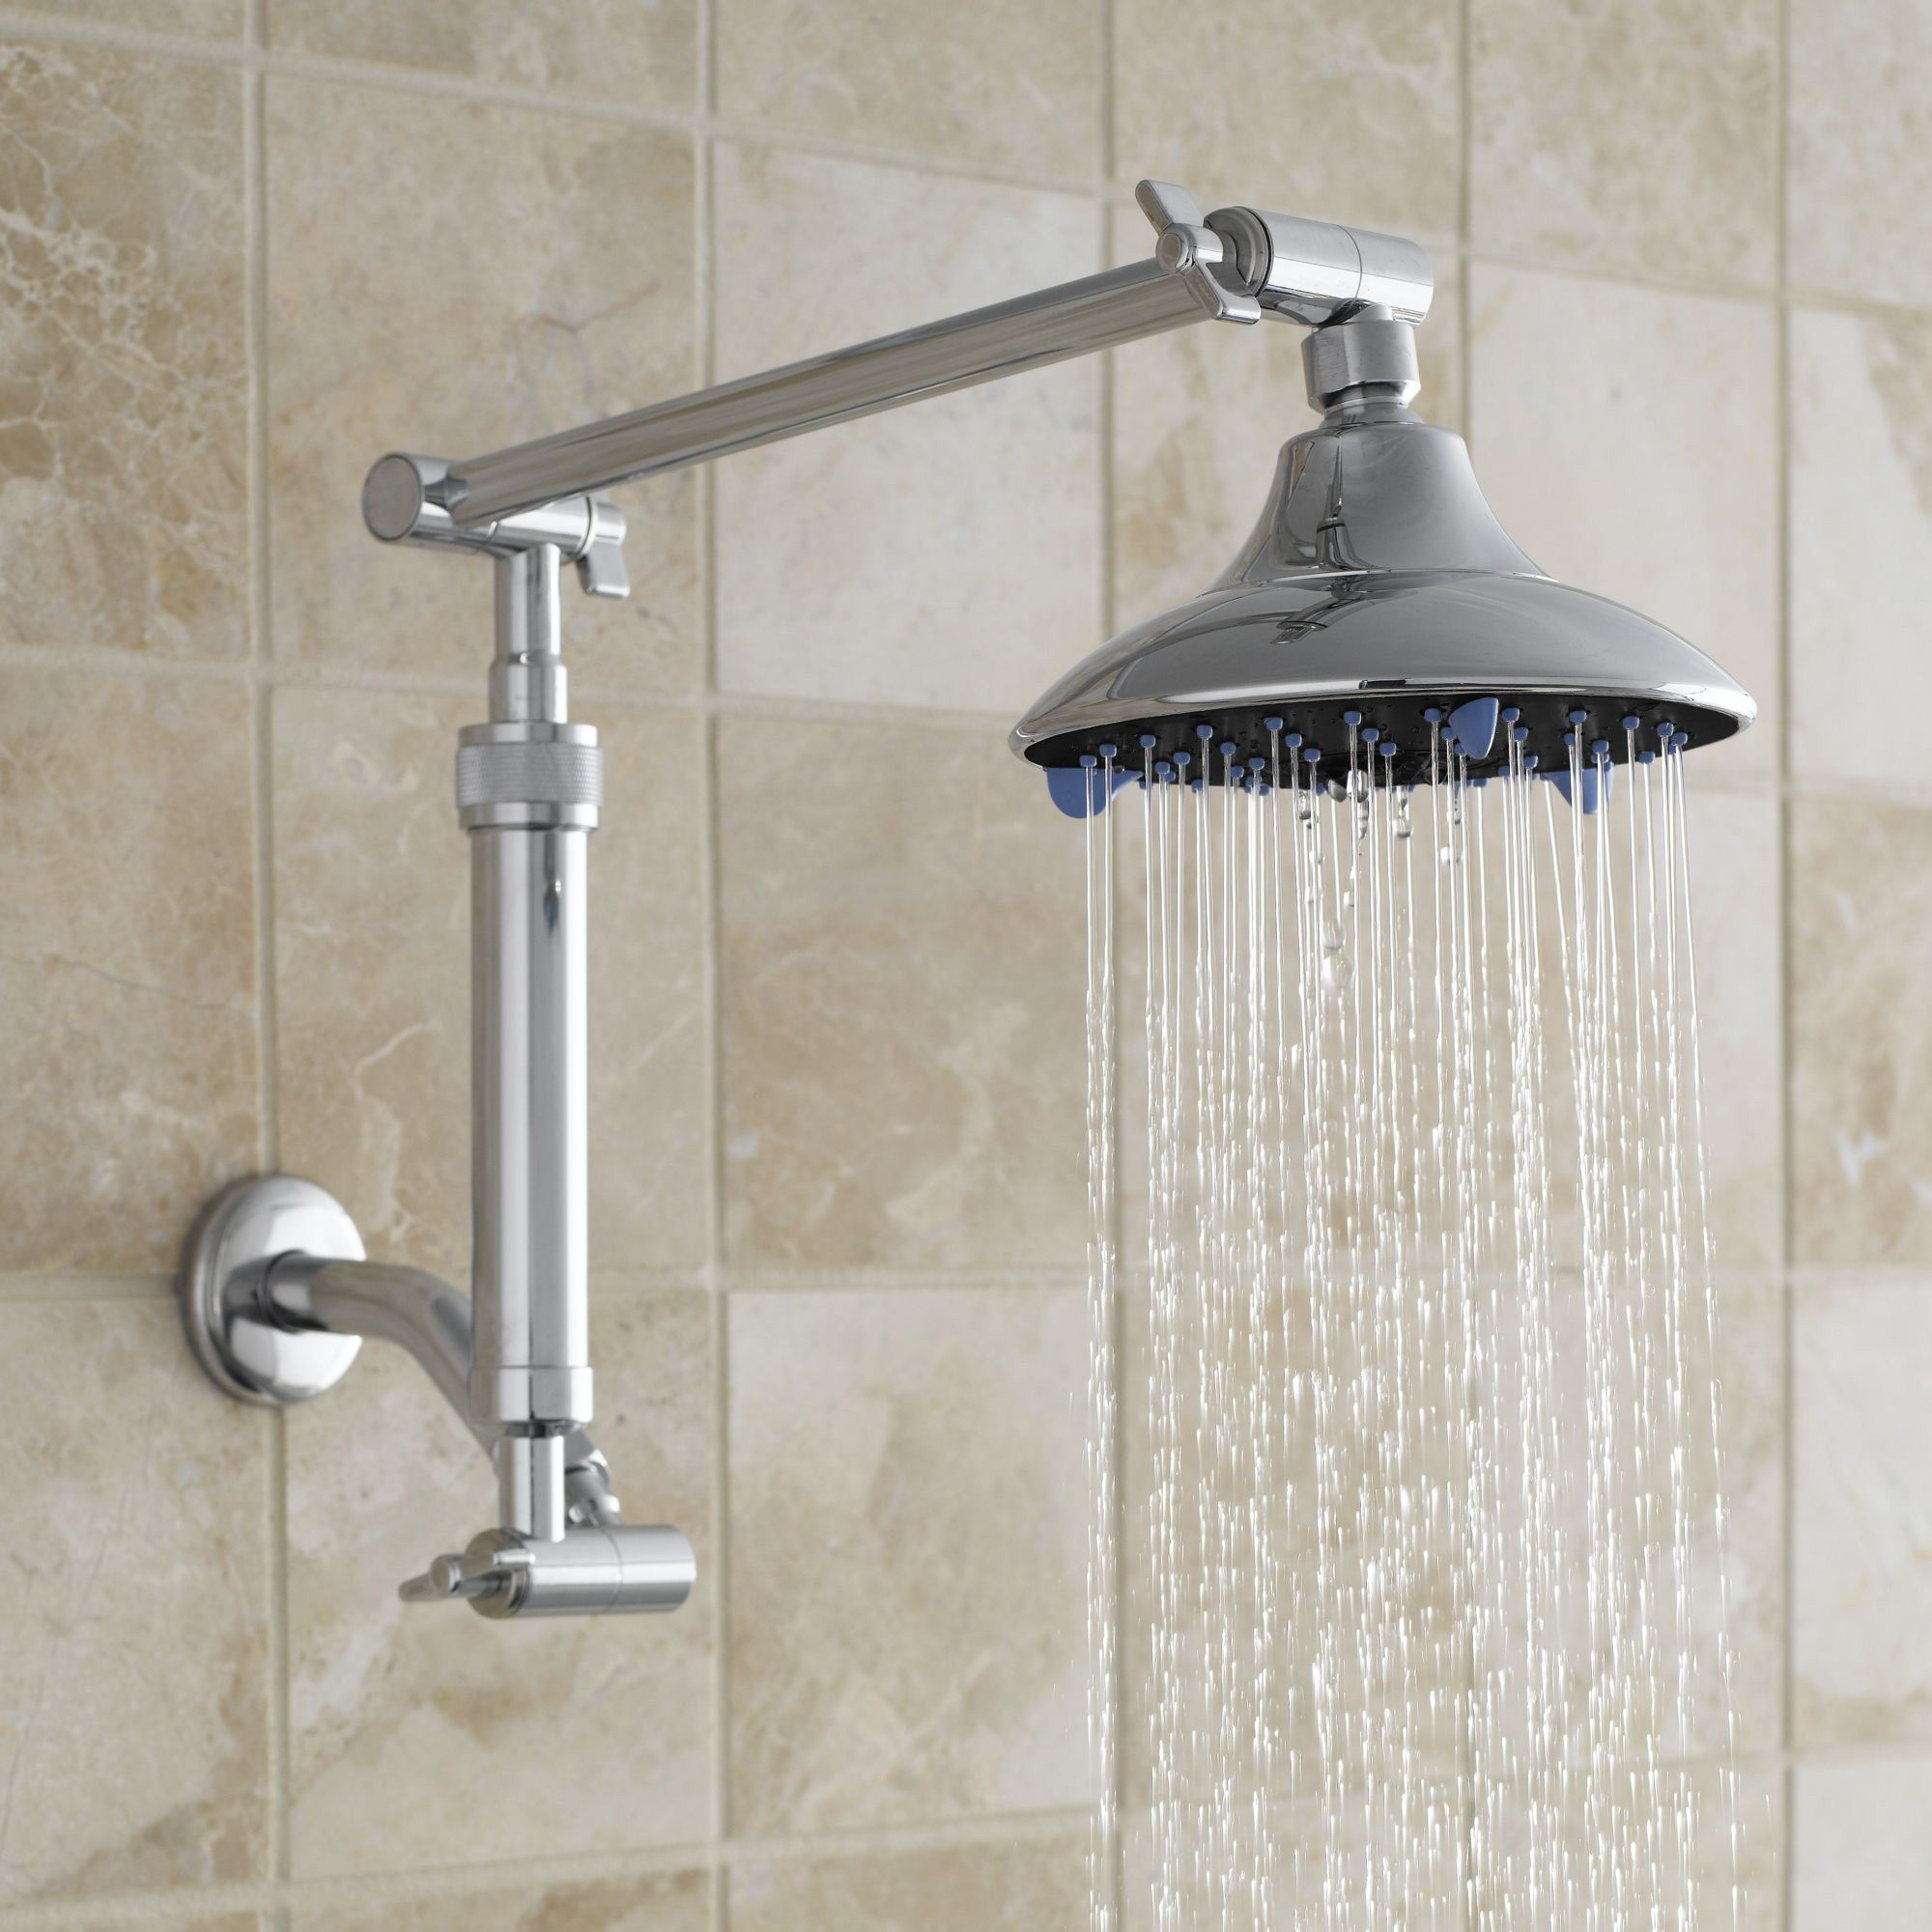 rain showers rainshower pin deszczownica obi kupuj bathroomrain bathroom shower in private w